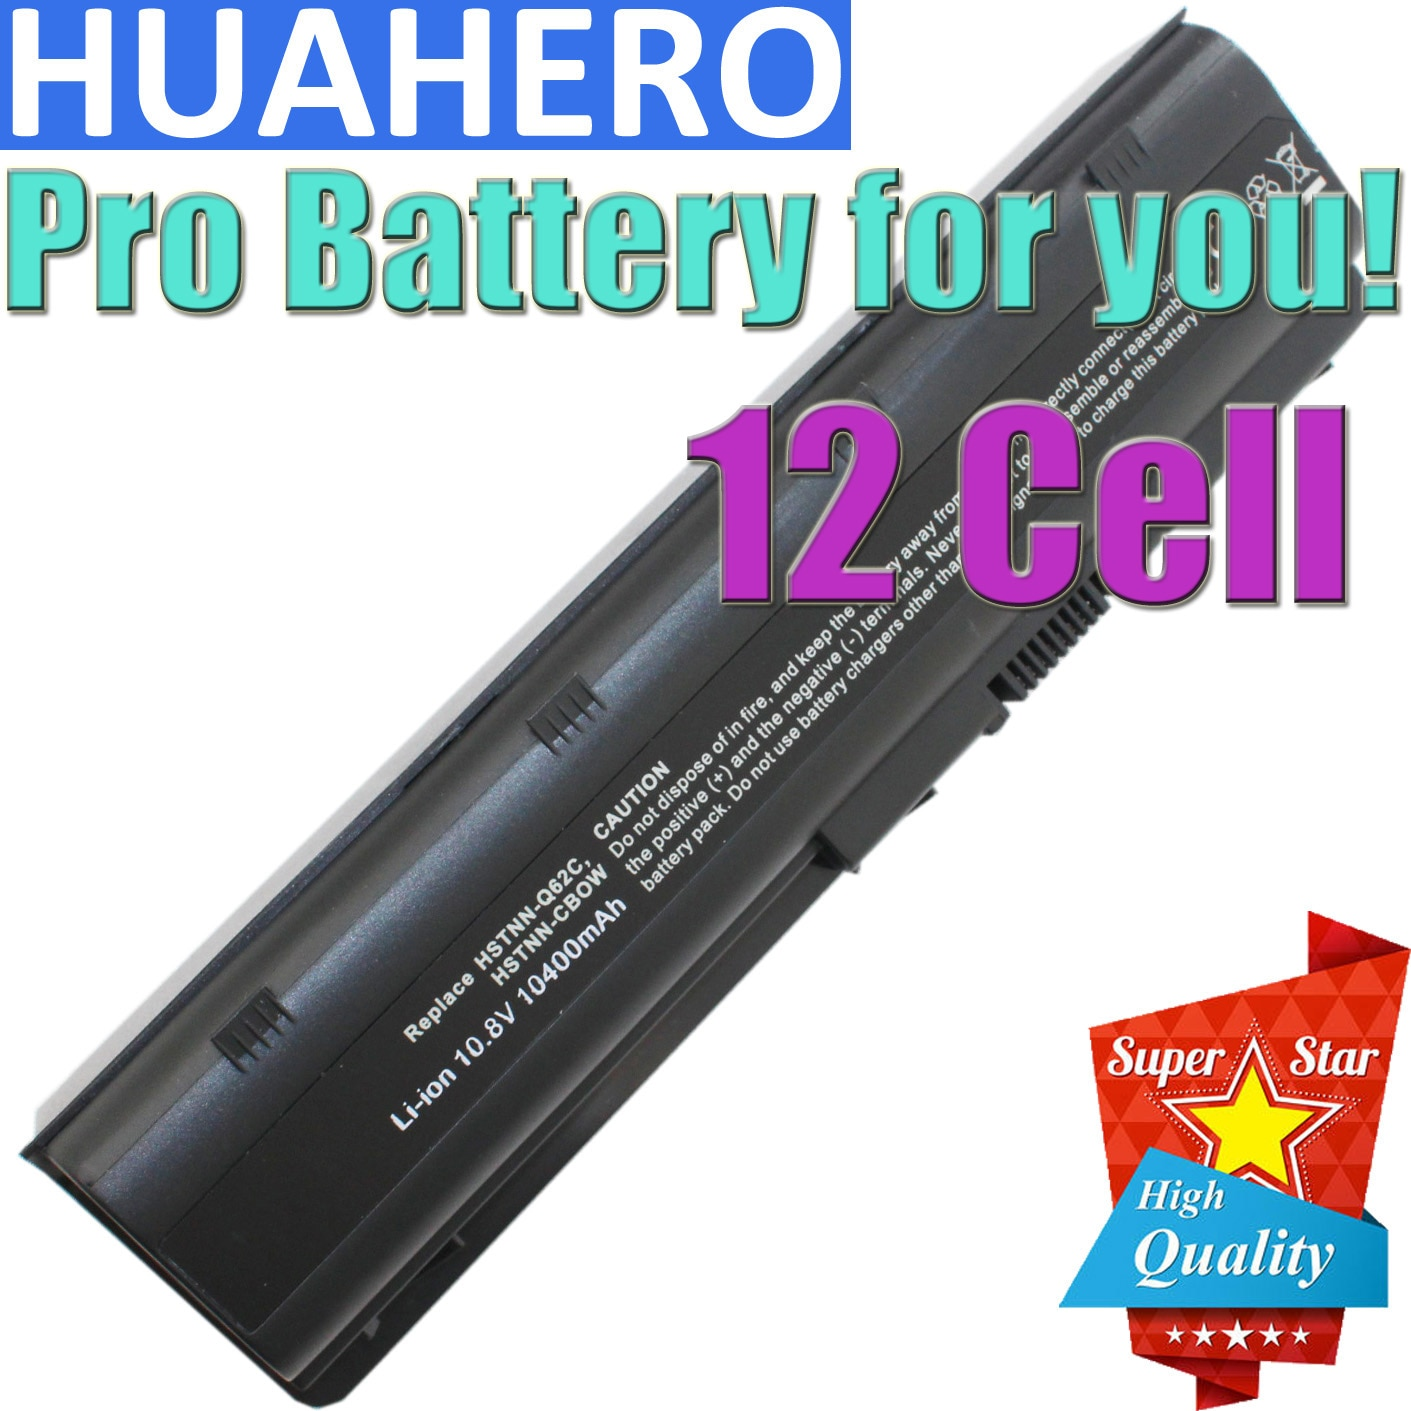 HUAHERO 12cells mu06 Laptop battery for HP Notebook PC 593553-001 Pavilion g4 G6 G7 G32 cq42 593562-001 dm4 dv6 MU09 HSTNN-LB0W znovay mu06 laptop battery for hp pavilion g4 g6 g7 cq42 cq32 g42 cq43 cq62 g32 dv6 dm4 g72 593562 001battery mu09 10 8v 47wh